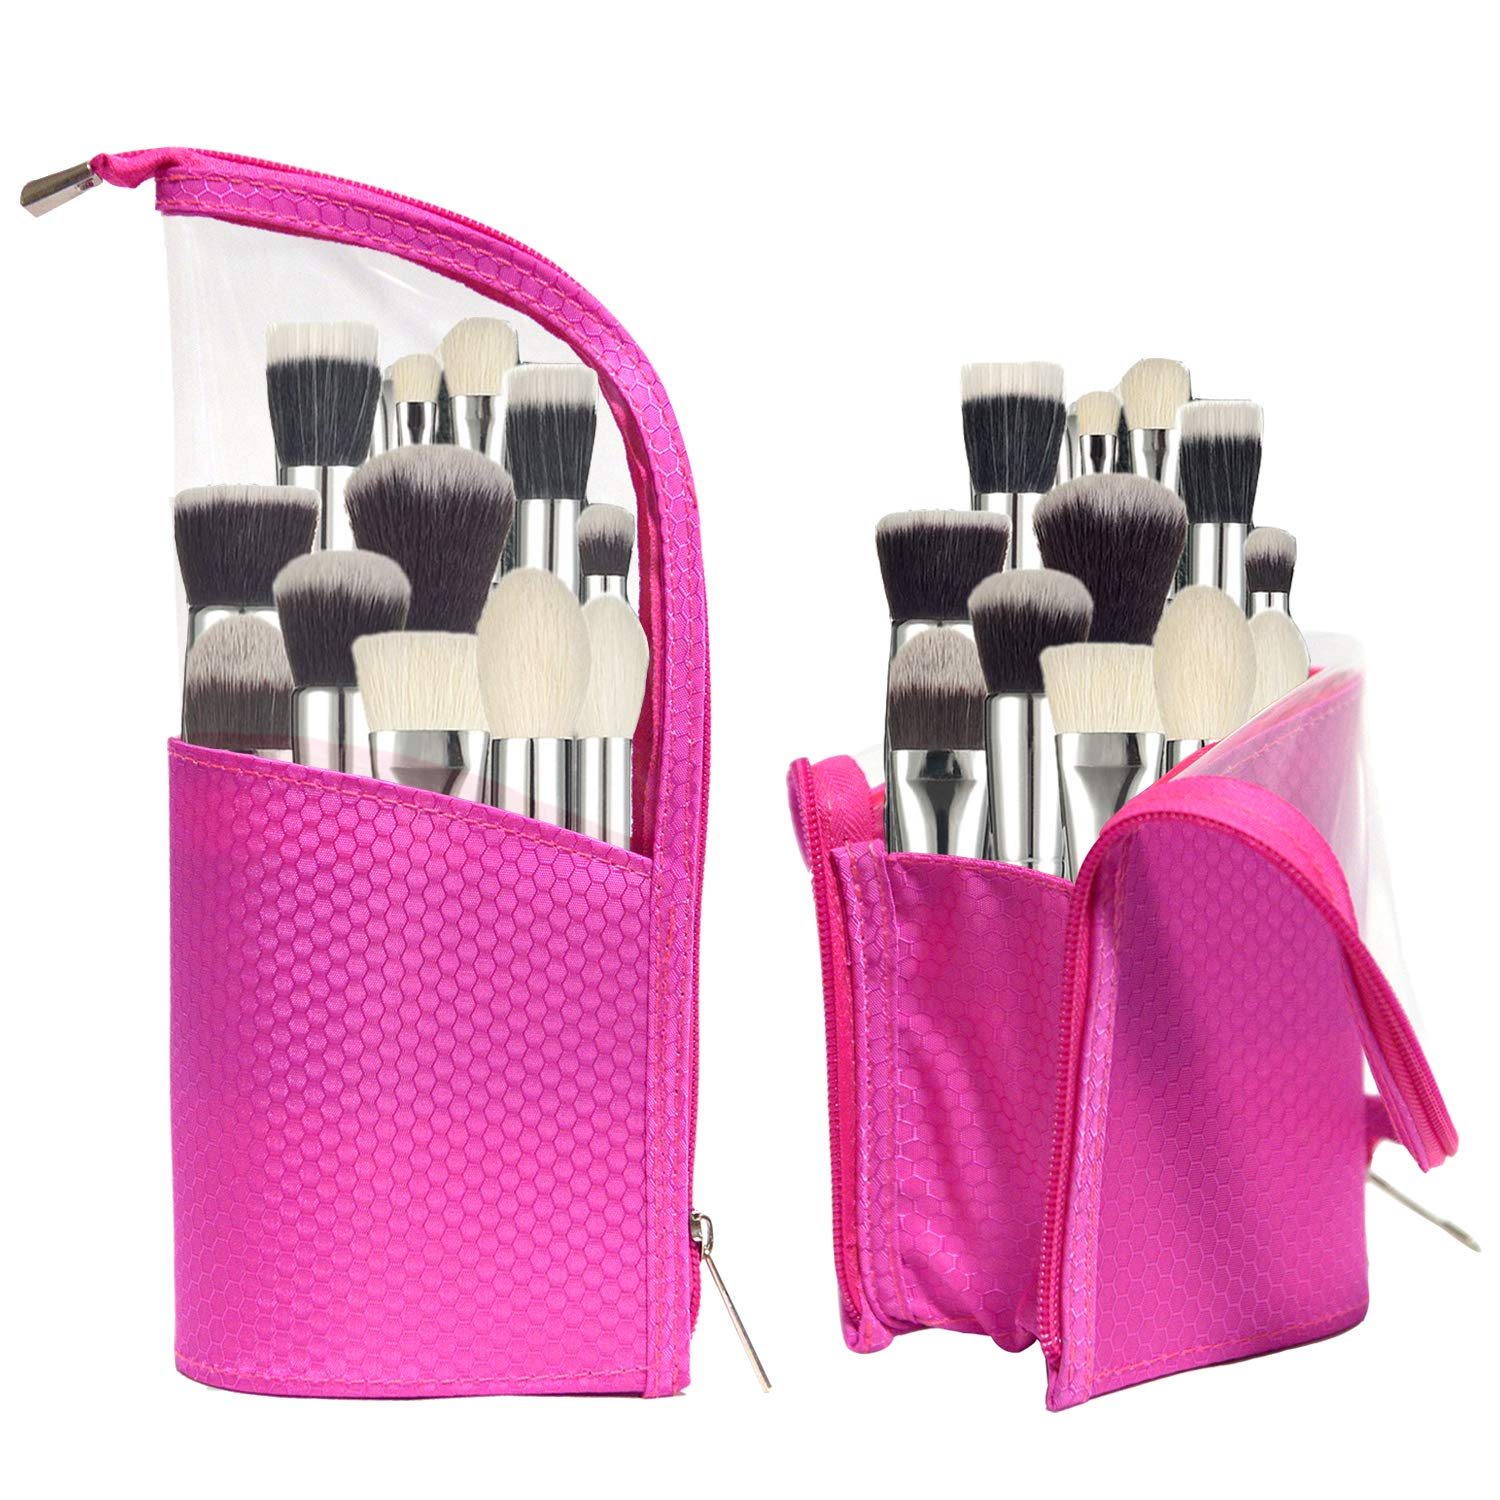 Waterproof Cosmetic bag Travel Make up Brush Cup Holder Organizer Bag, Stand Pencil Pen Case pen holder for Sketch, Portable Stand-Up Toiletry Stationery Bag with Divider Pink